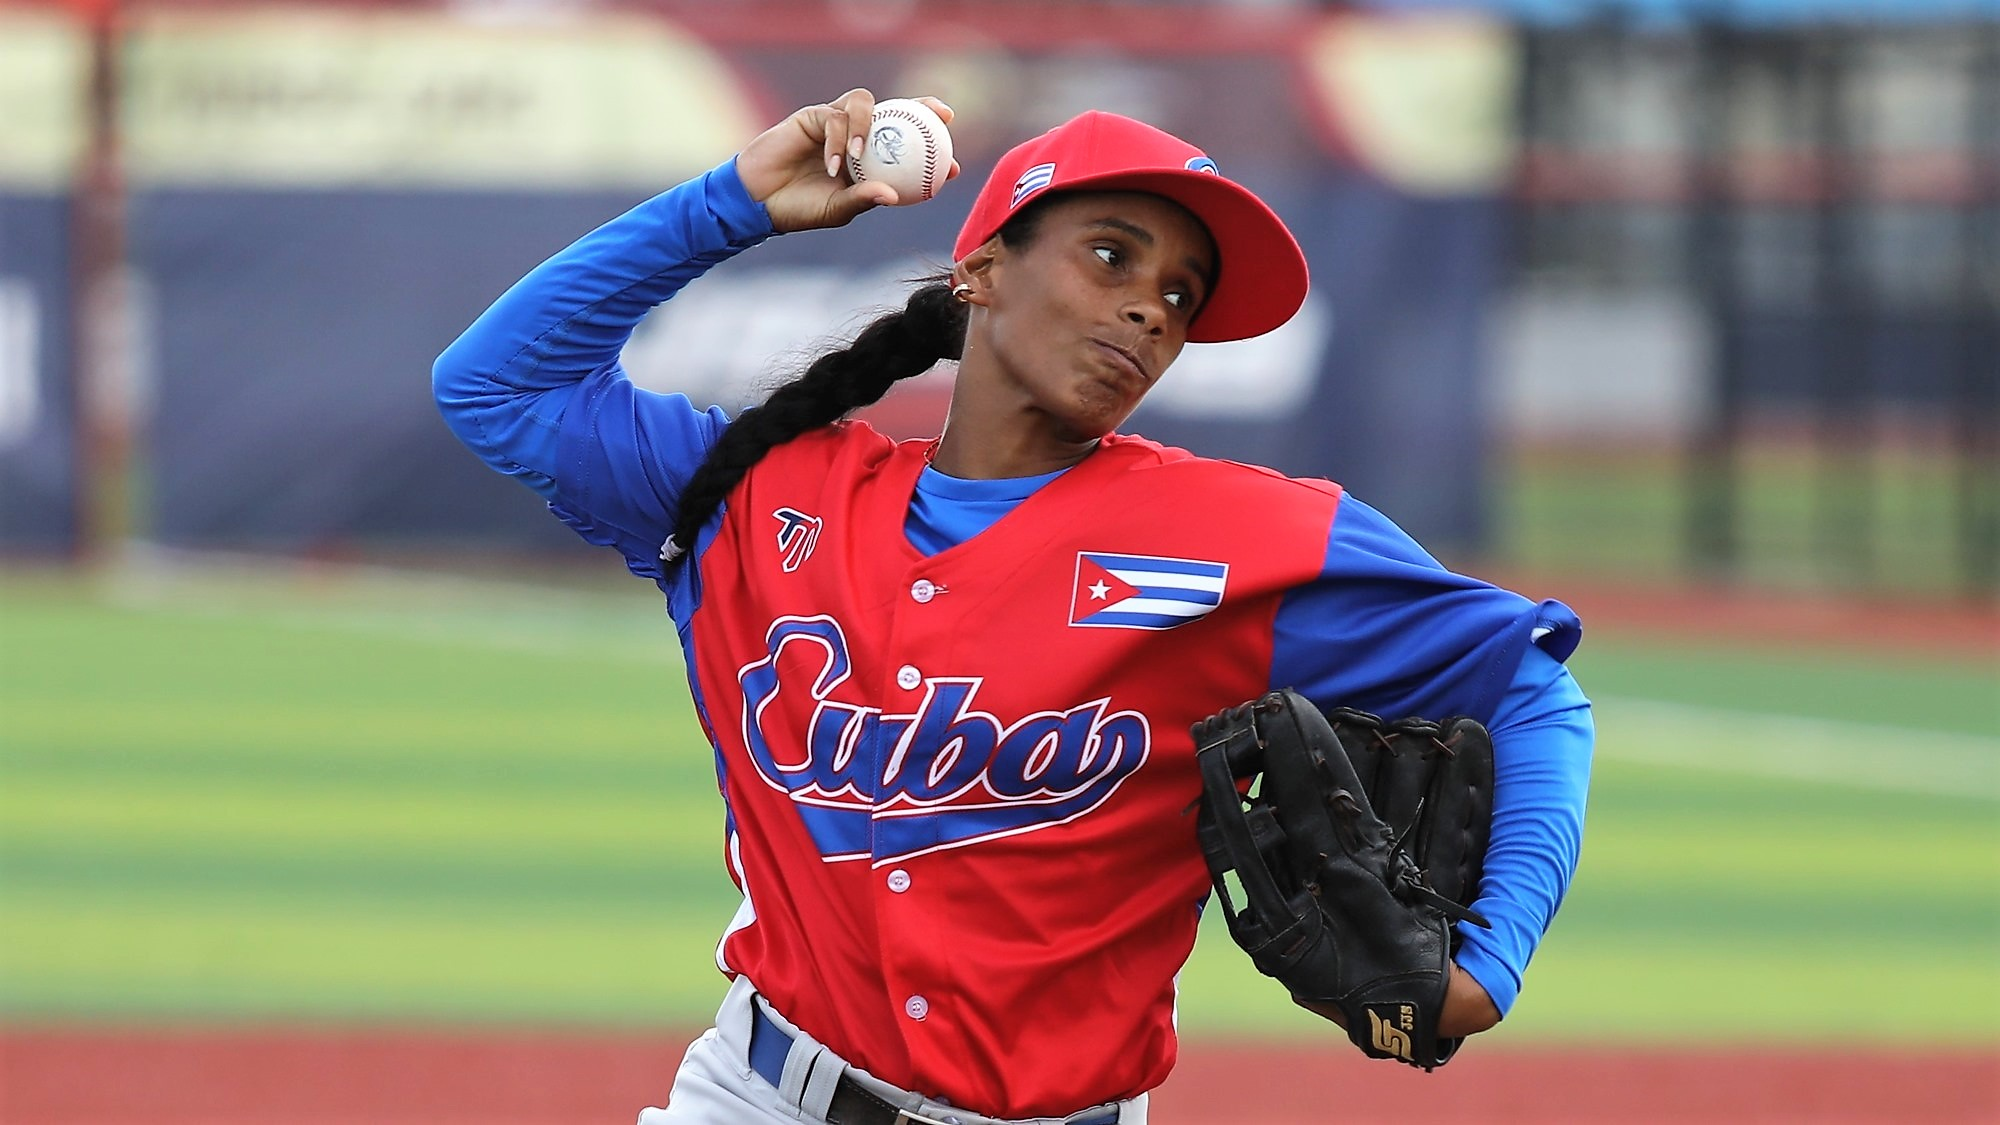 Maraisy Perez started the game for Cuba